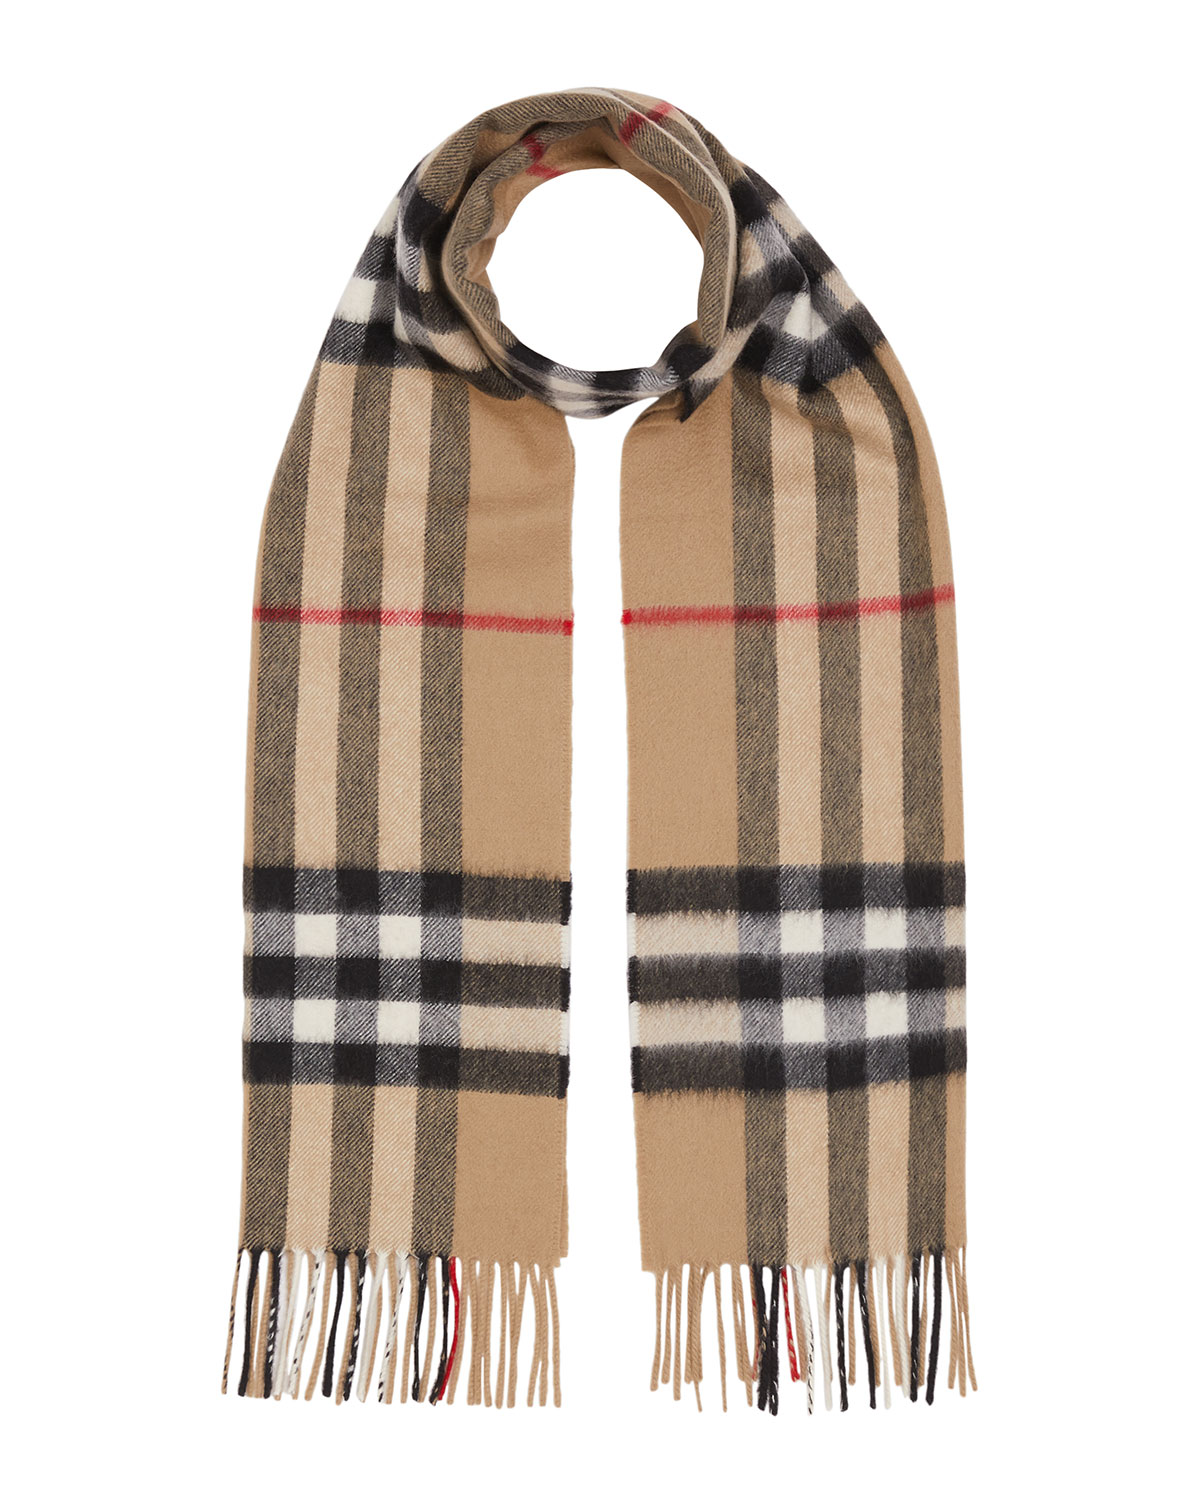 Burberry Accessories MEN'S GIANT CHECK CASHMERE SCARF